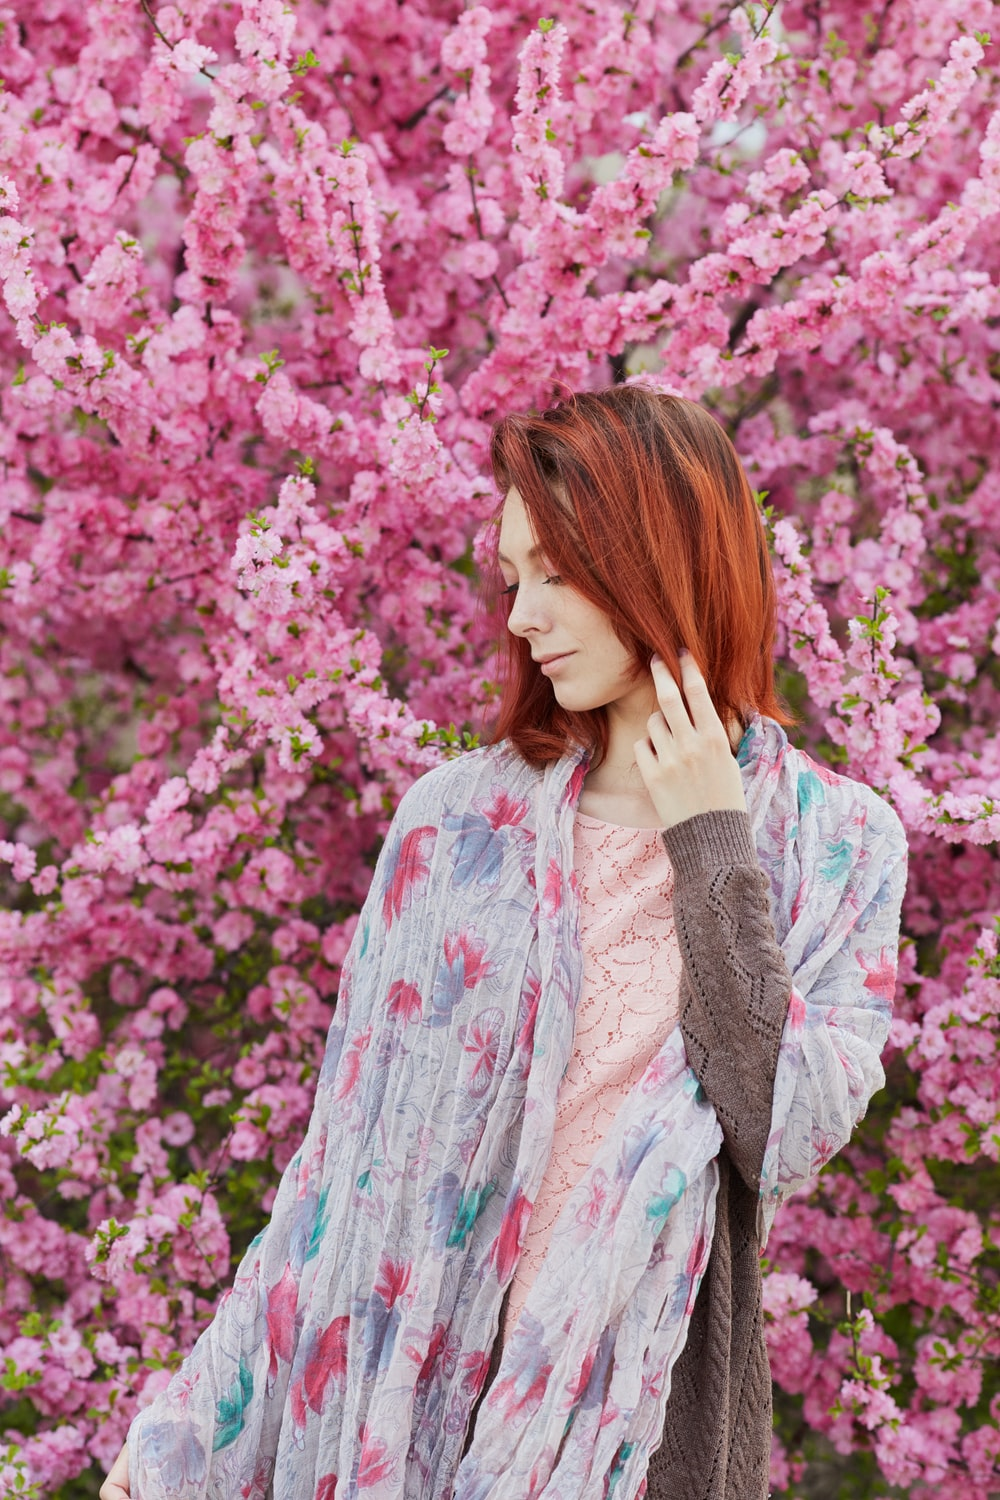 woman in white and blue long sleeve shirt standing near pink flowers